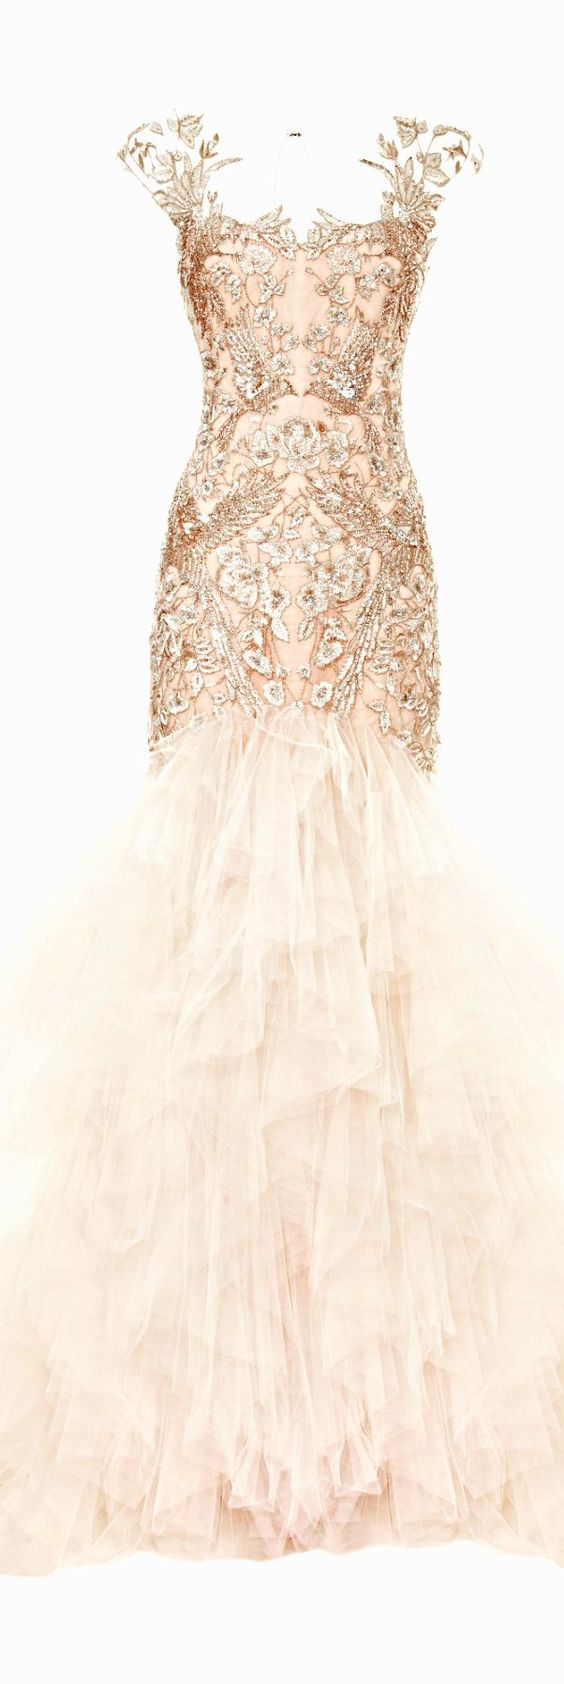 rose gold wedding gown glitter wedding dress 40 Rose Gold Metallic Wedding Color Ideas Hi Miss Puff